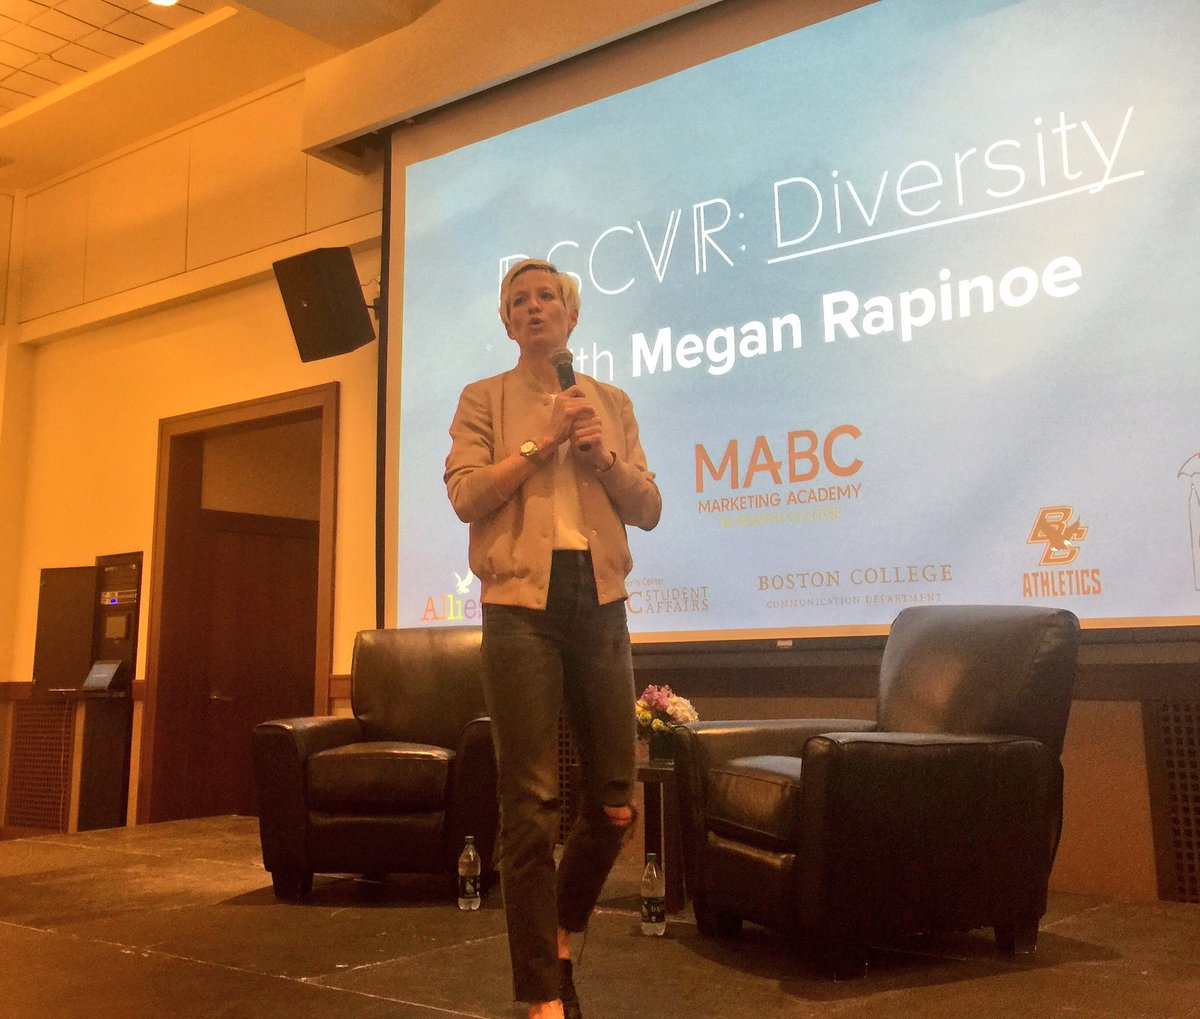 Afternoon well spent: @mPinoe talking about being your best you at Boston College. #NWSL #USWNT <br>http://pic.twitter.com/T1BwgH98zI